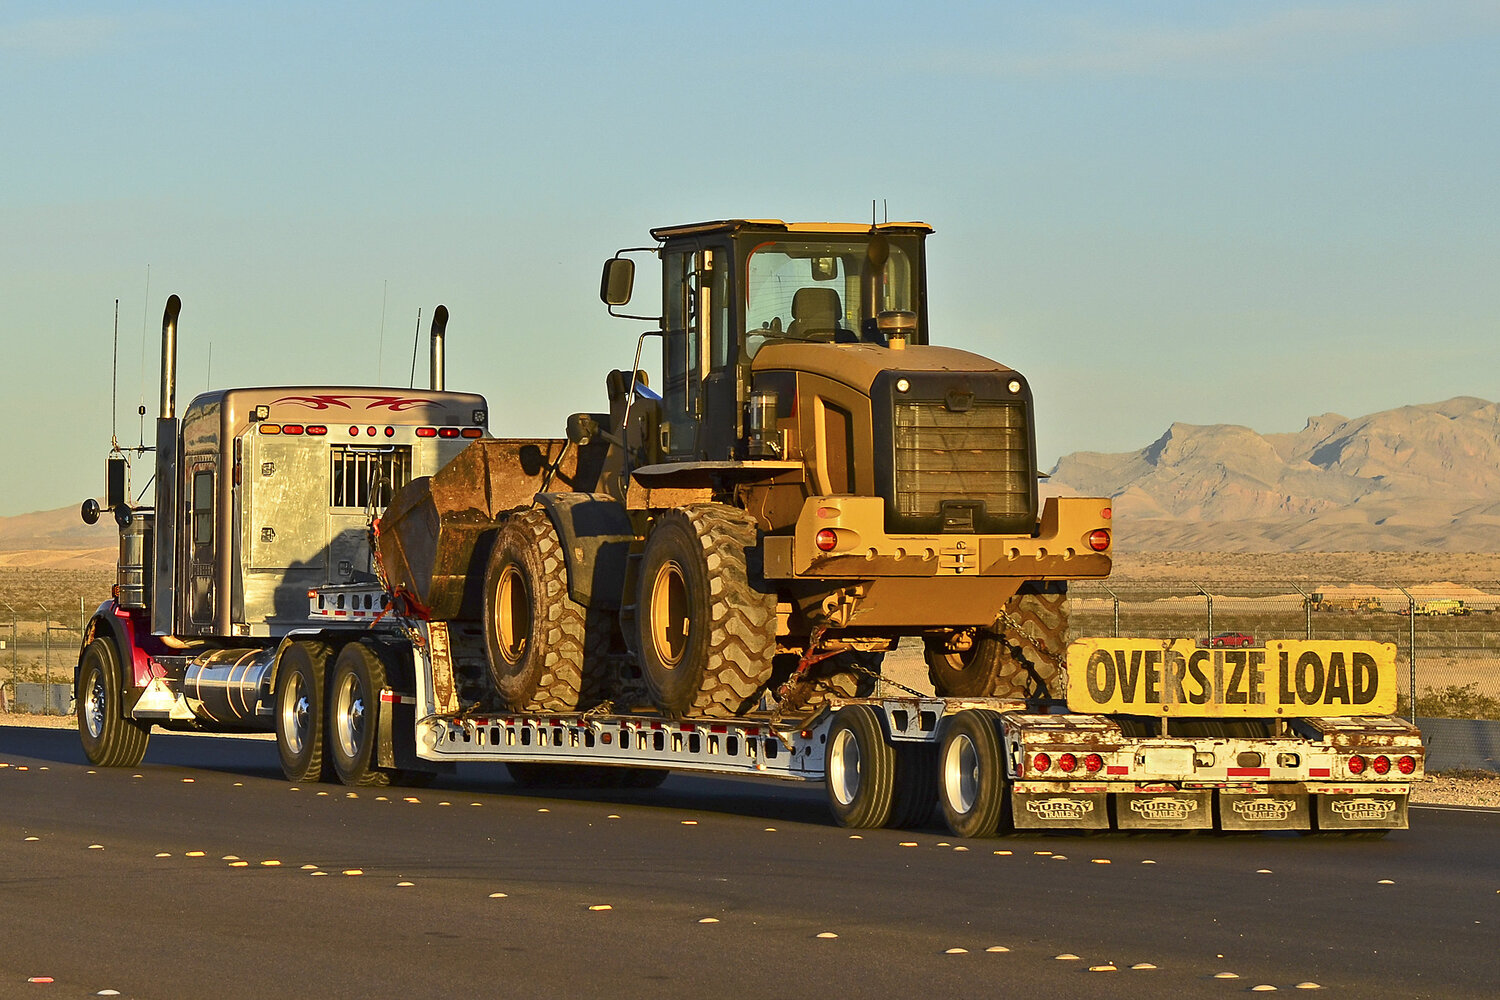 Heavy-Haul - Understanding dimensional and weight restrictions is critical to finding the right equipment. Heavy-haul encompasses freight up to 100,000lbs.